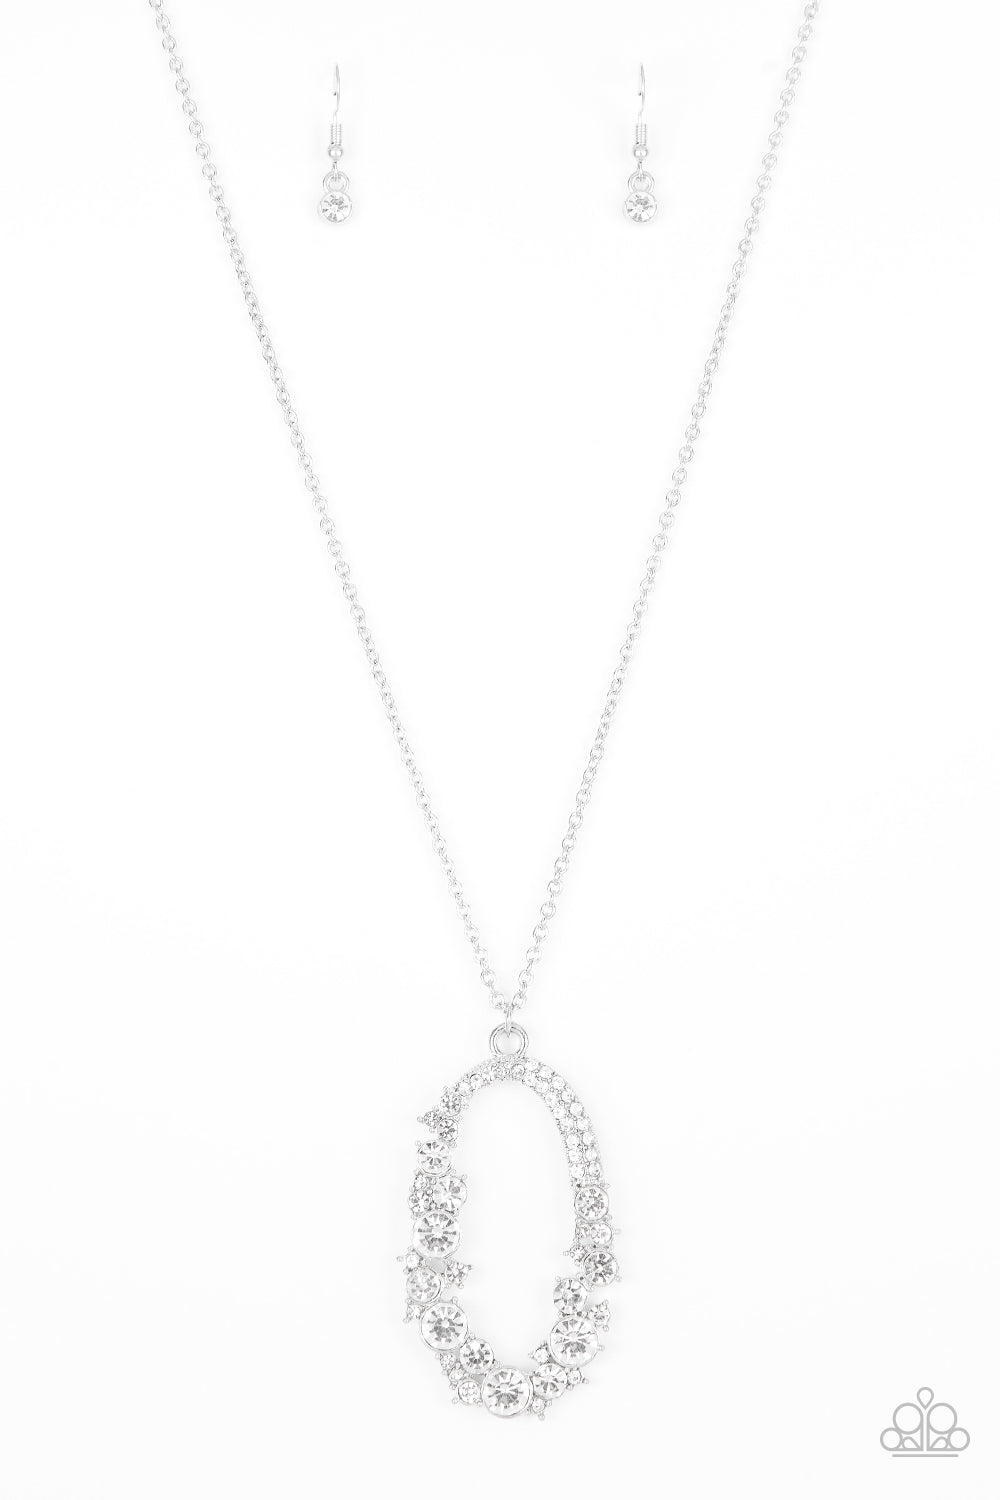 Spotlight Social Necklace